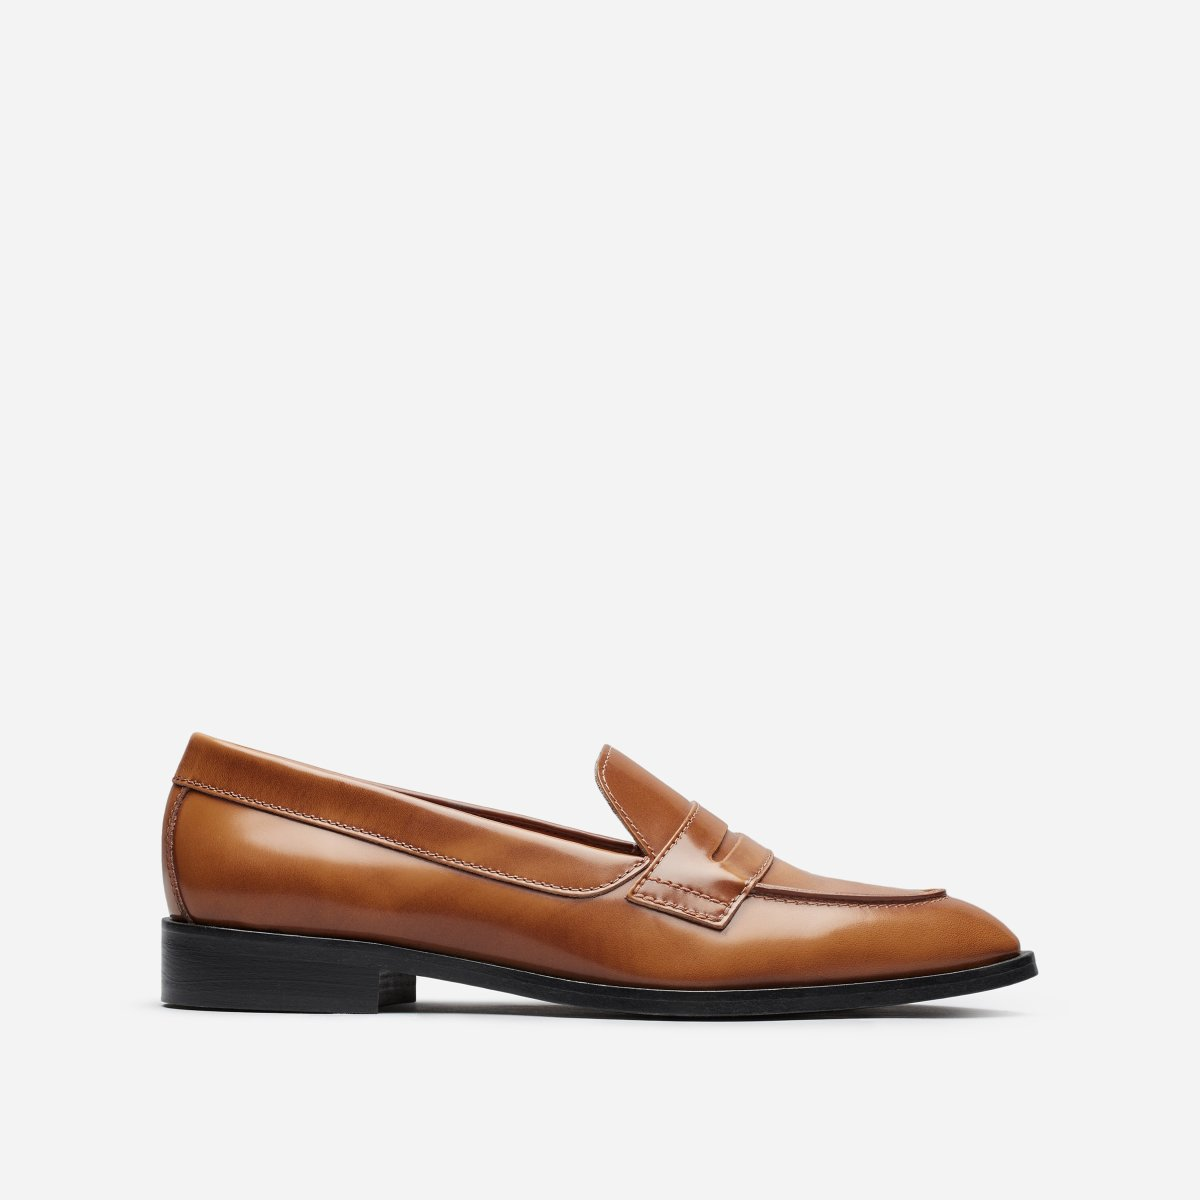 a4eb8dc002d The Modern Penny Loafer